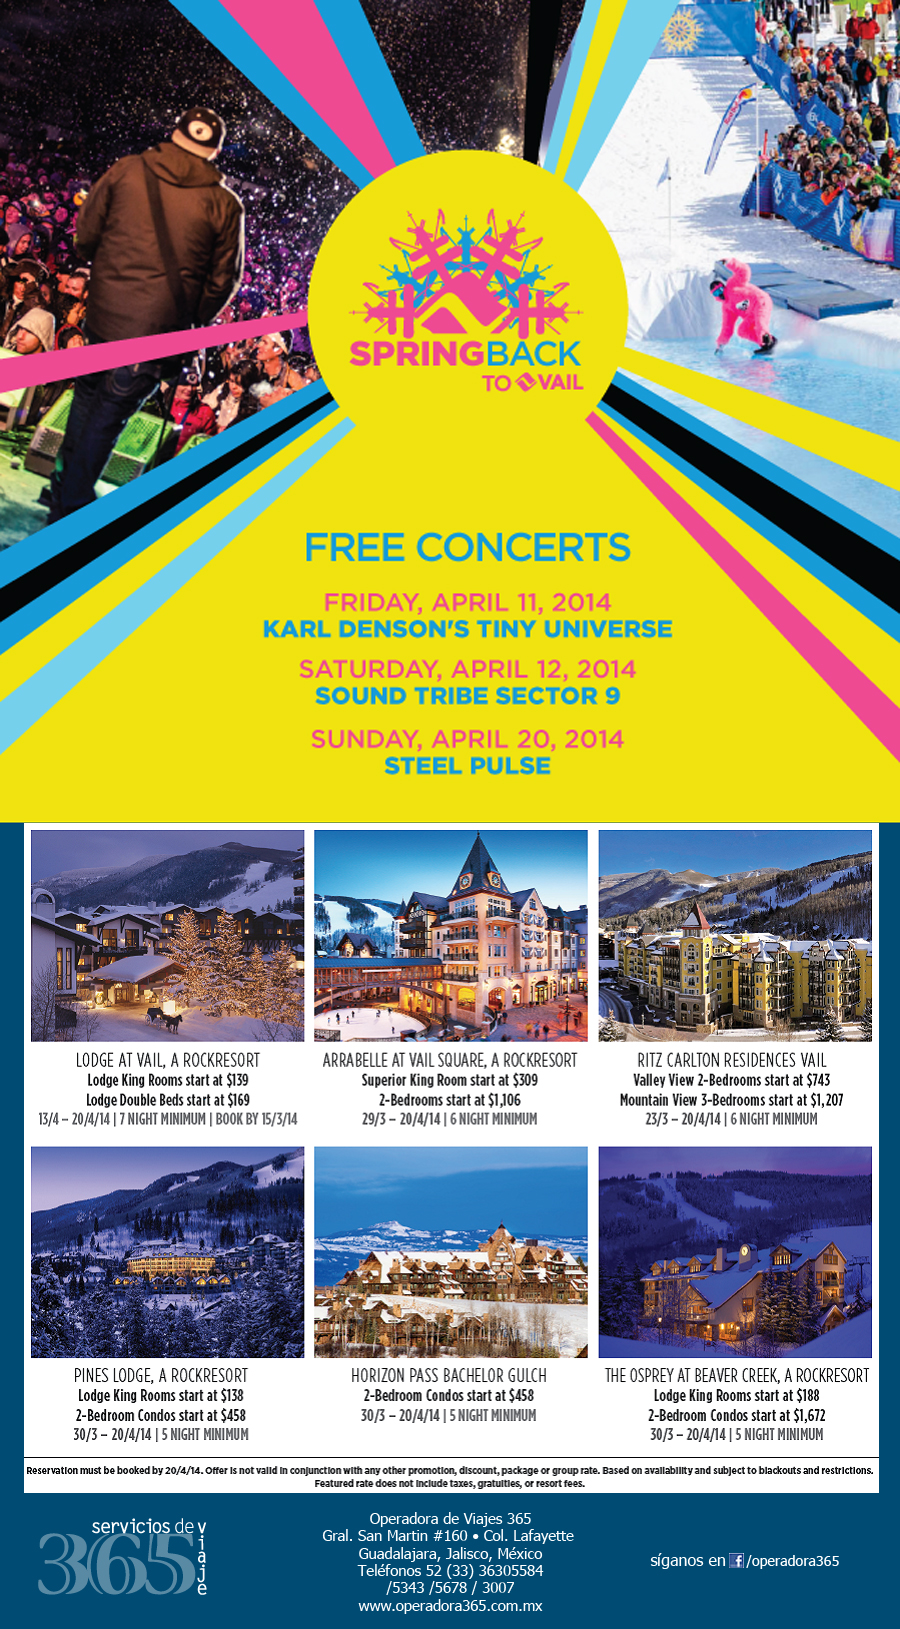 Spring-Back-to-Vail-Free-Concerts